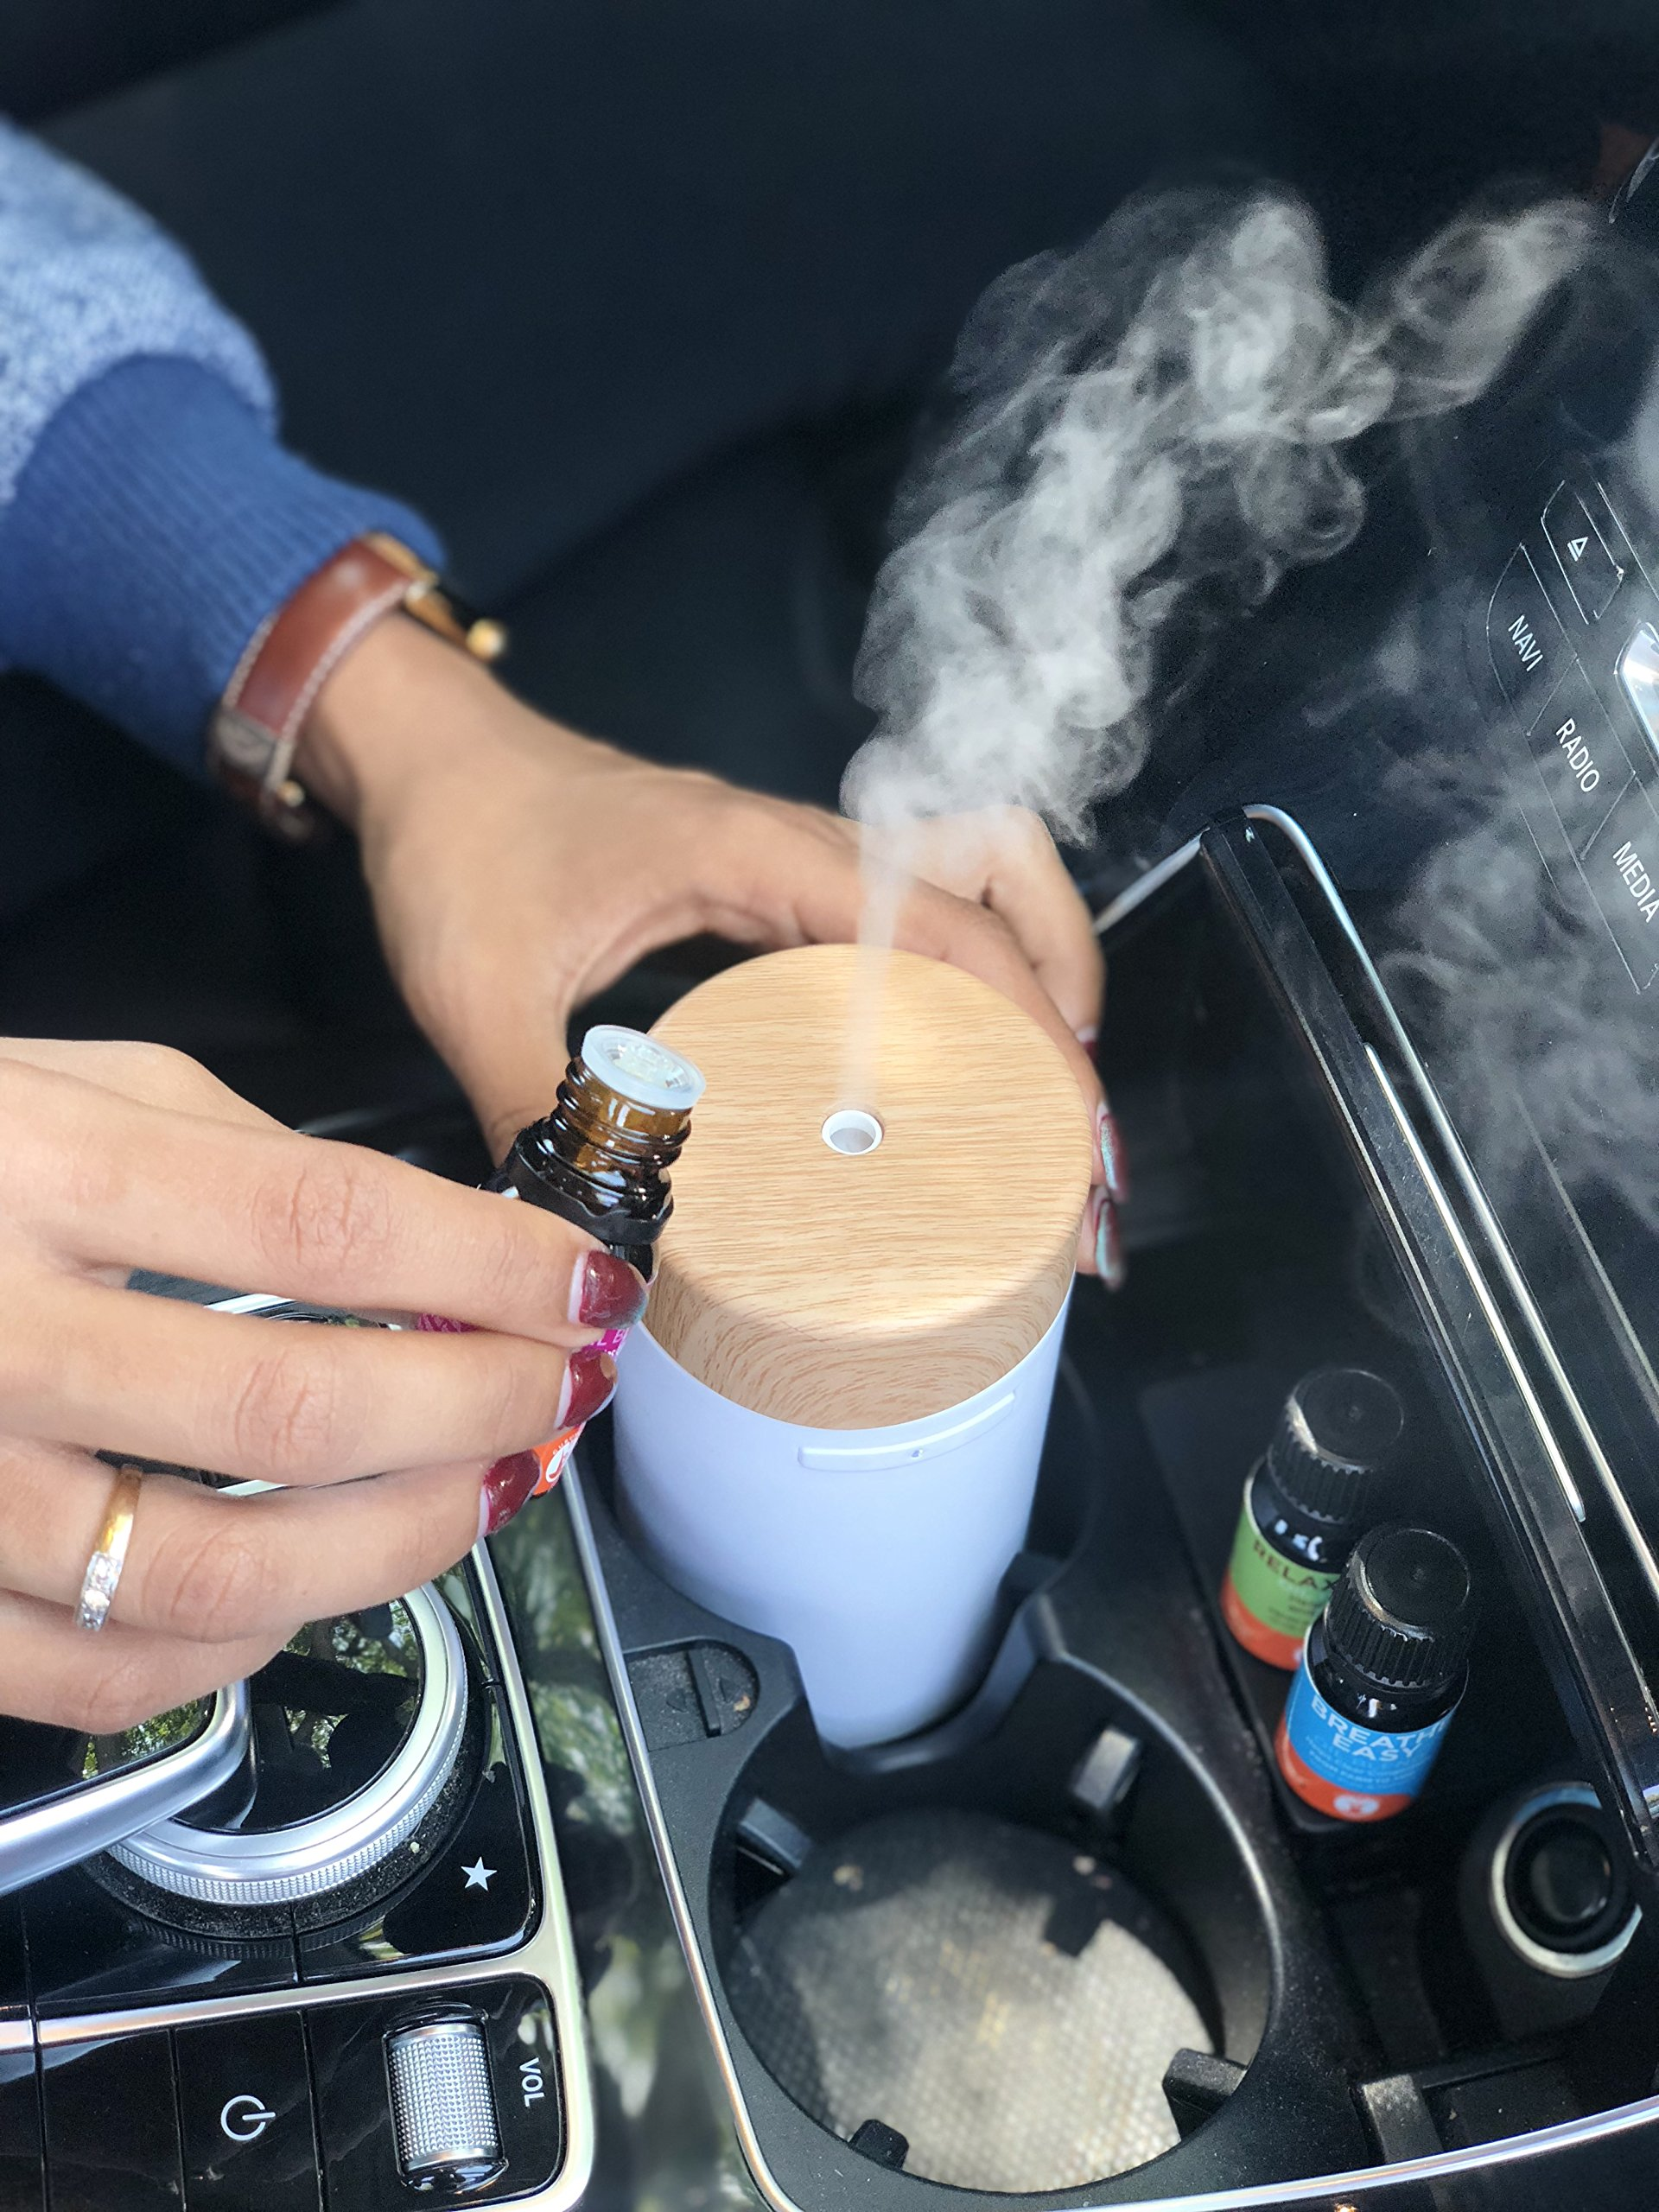 GuruNanda Portable White Essential Oil Diffuser for Car, Home, Office ~ Aromatherapy Ultrasonic Mist Essential Oils Diffusers ~ Travel-Size, Humidifiers No water needed, Fits in Cup Holder! by GuruNanda (Image #4)